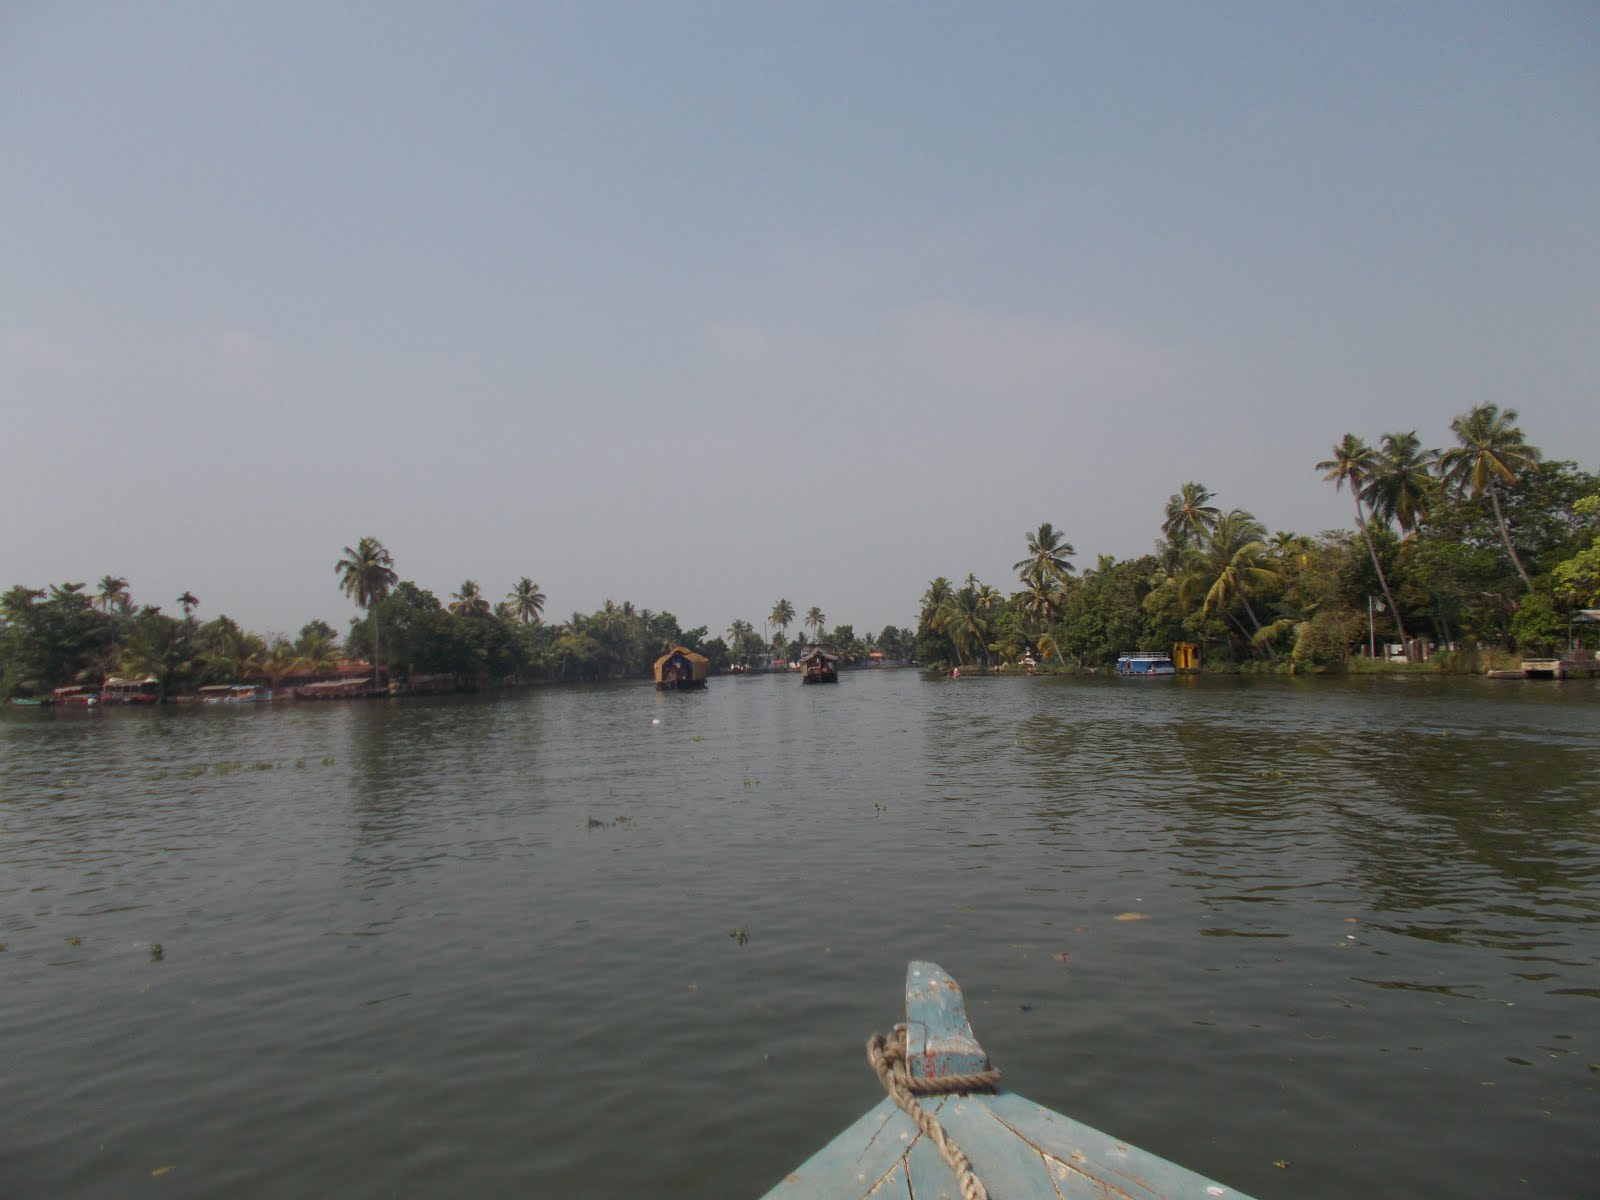 Cruising on passenger boat on backwaters of Kerala.